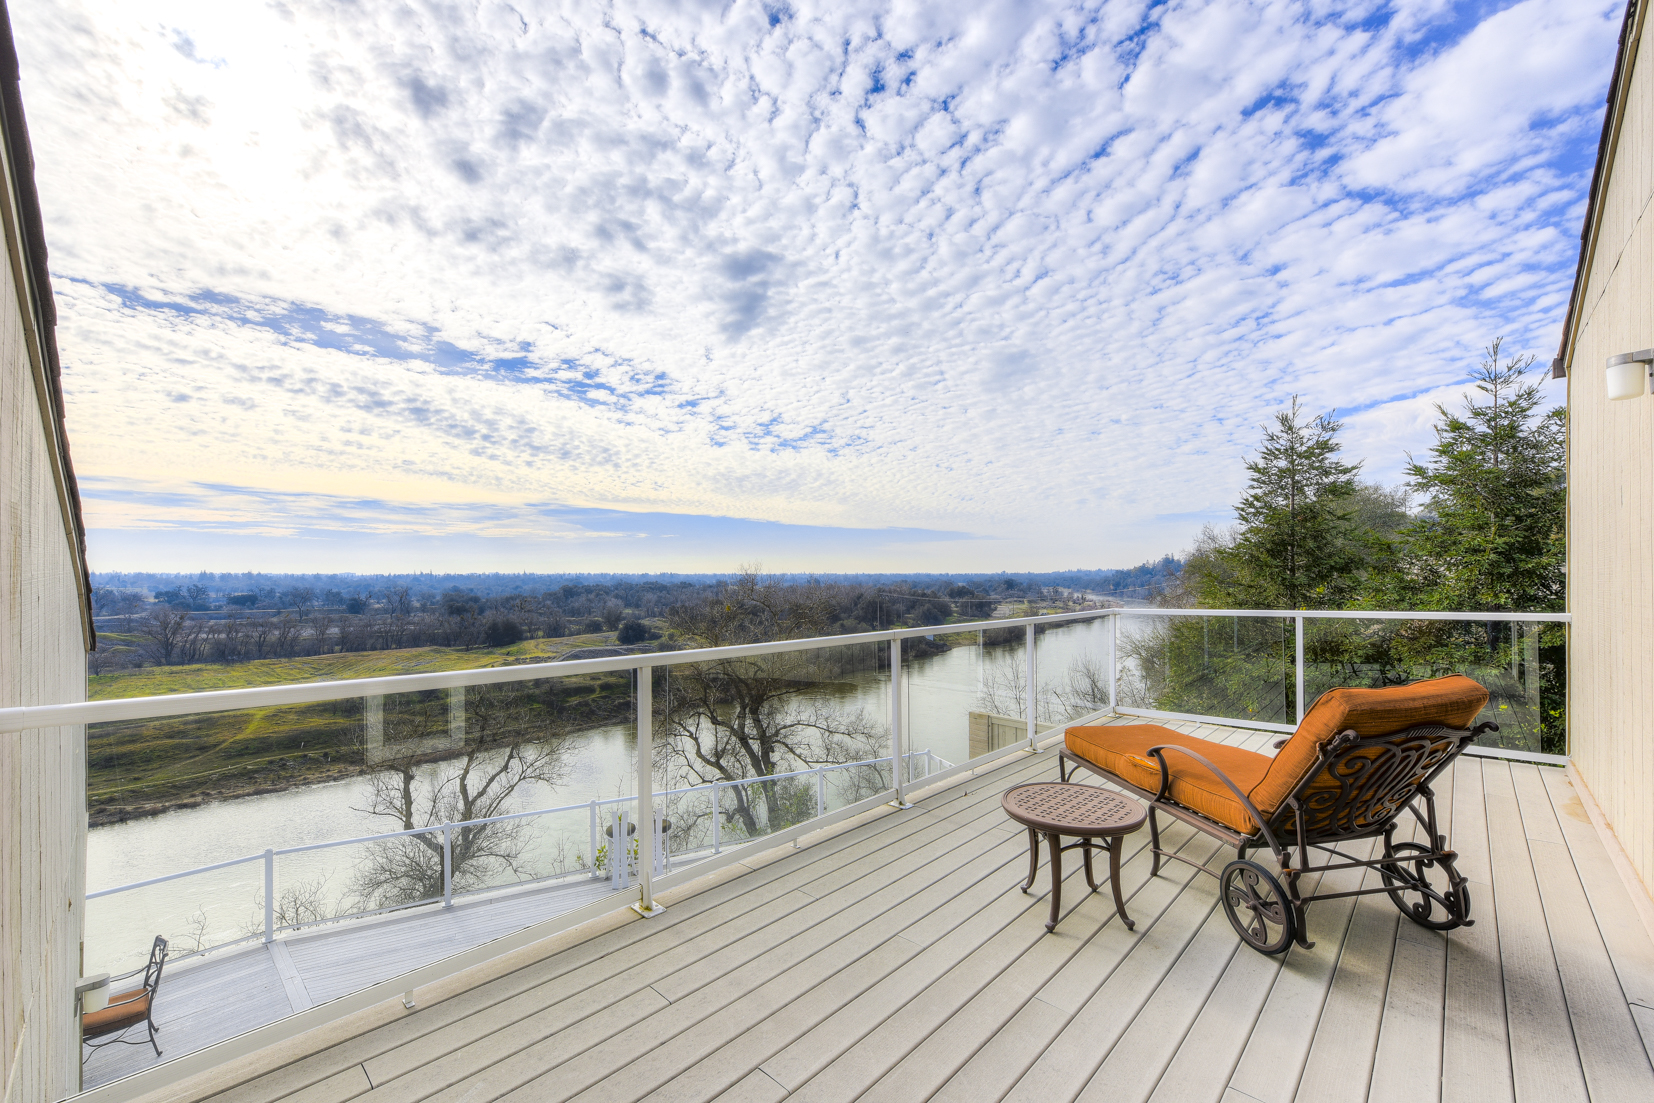 Relax on the wood deck along the American River